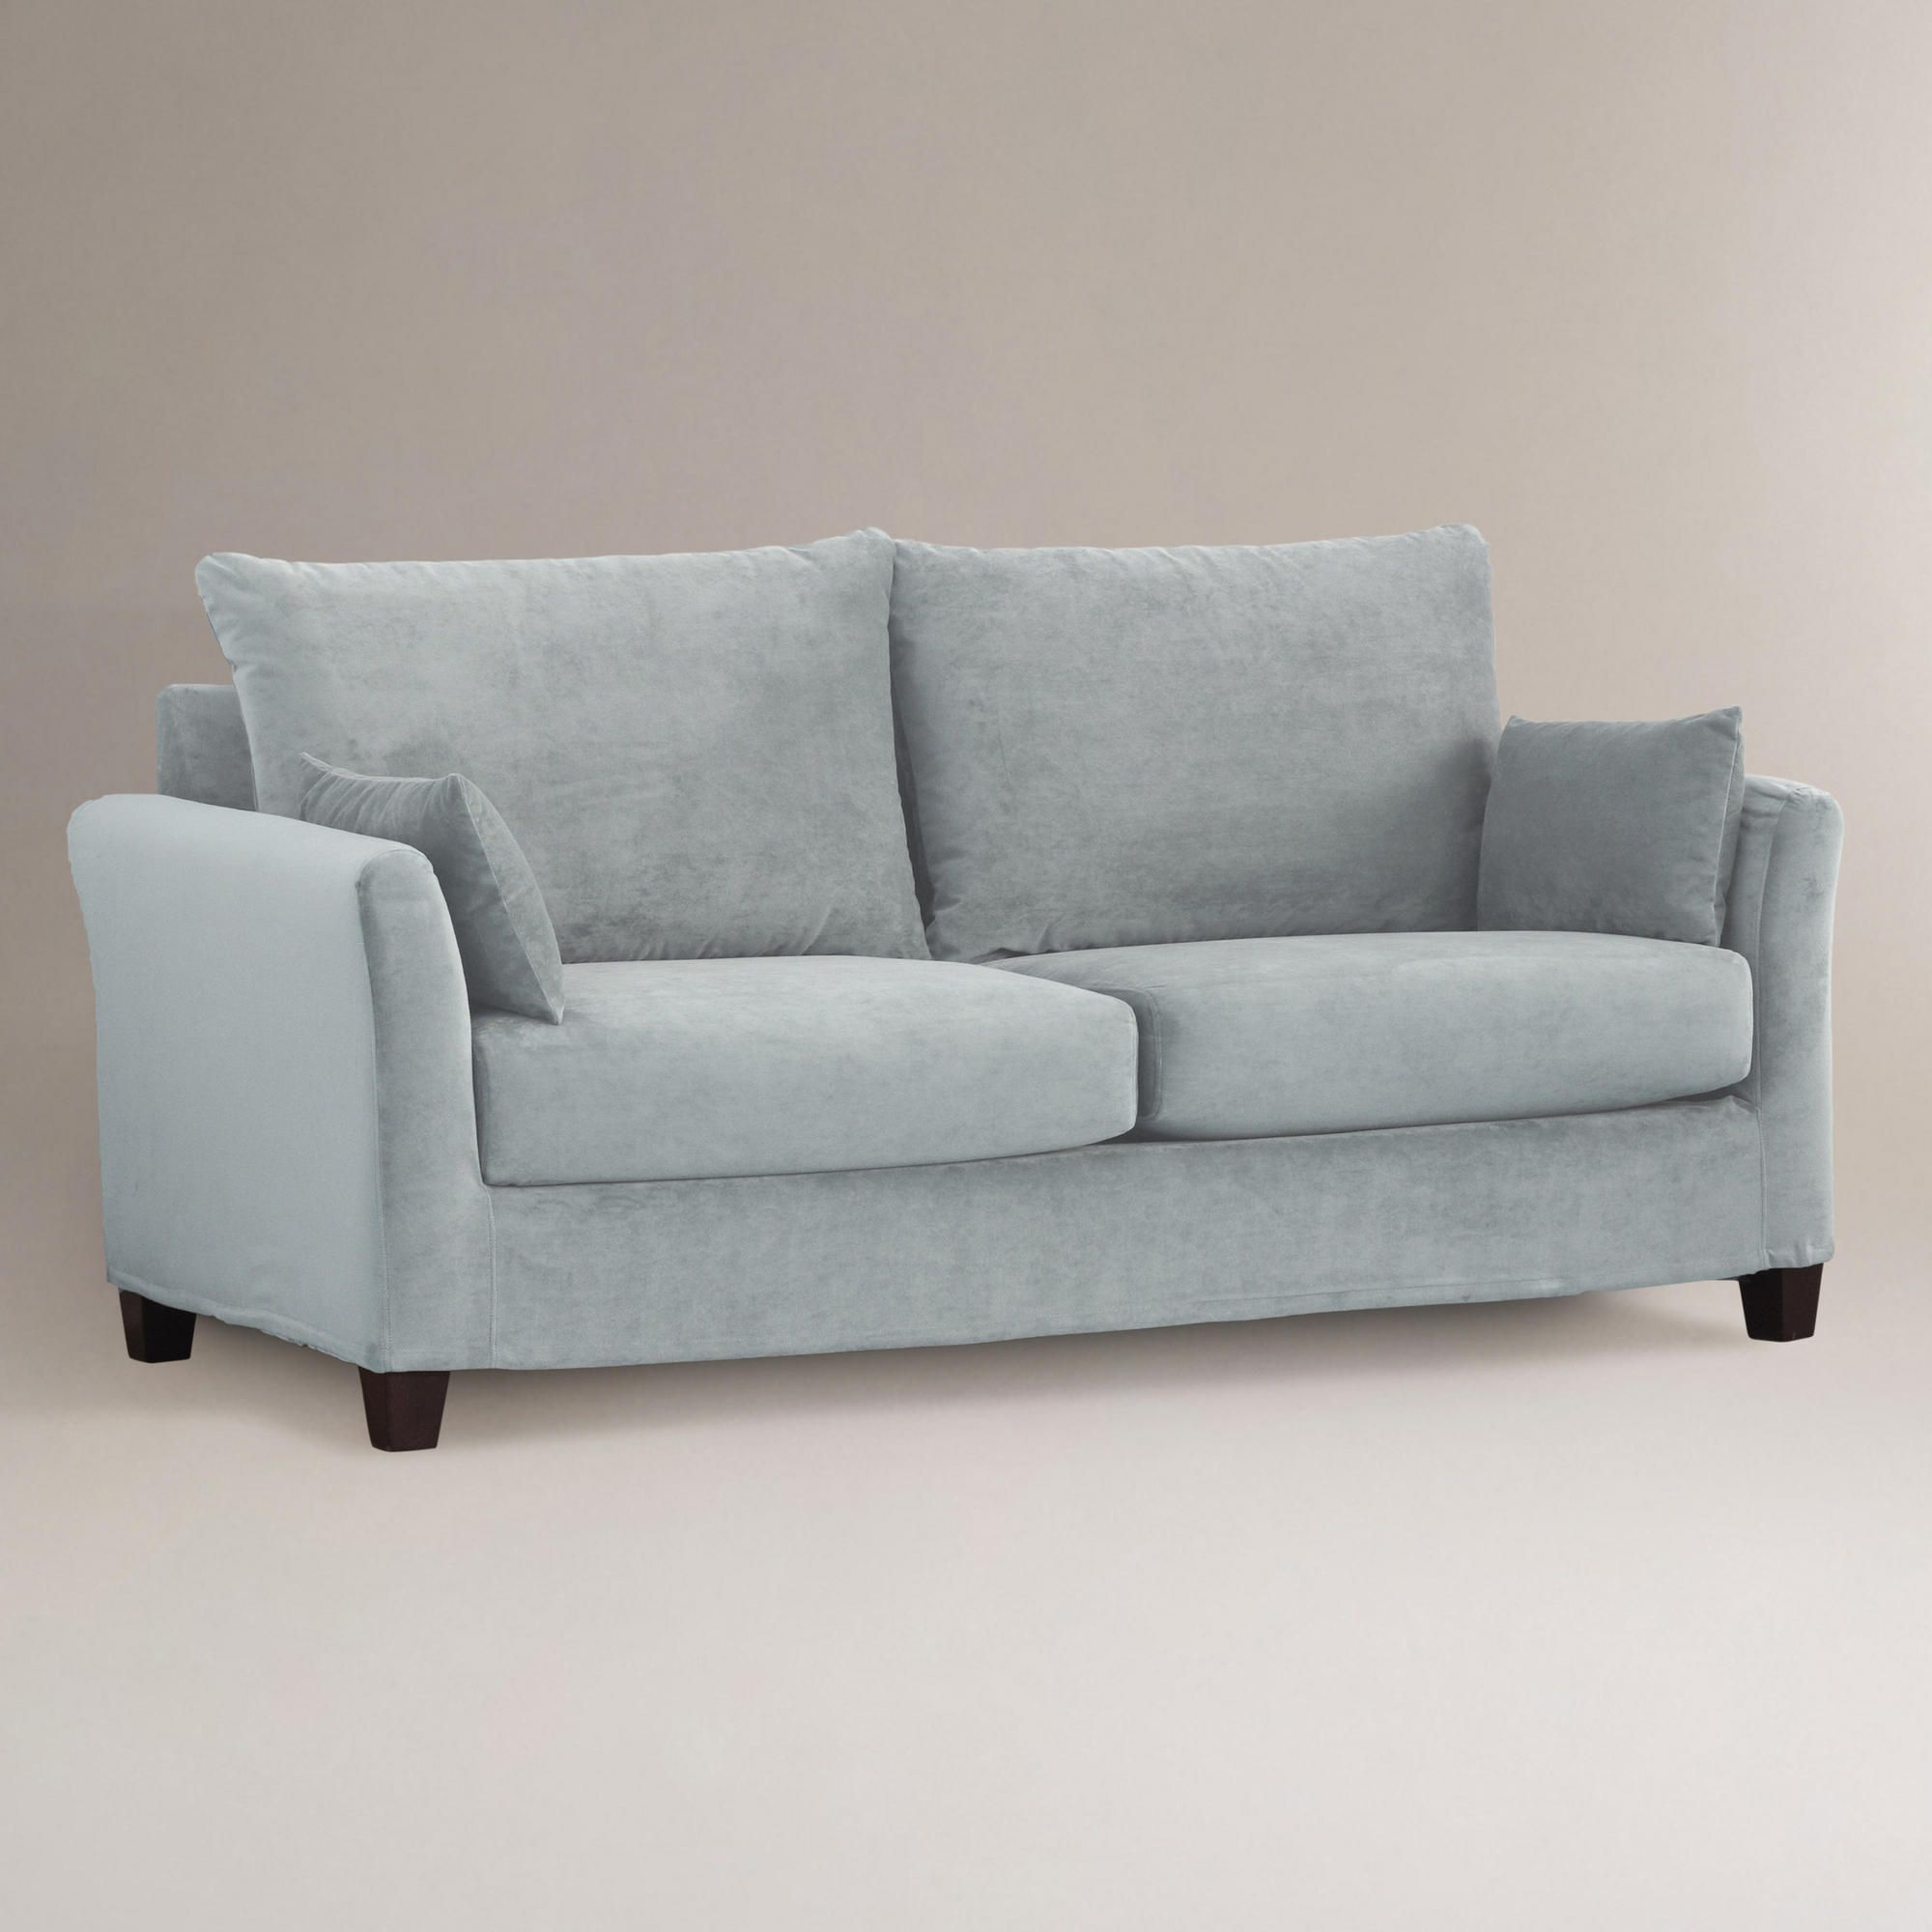 Magnificent Cloud Luxe Sofa Velvet Slipcover Collection World Market Pabps2019 Chair Design Images Pabps2019Com